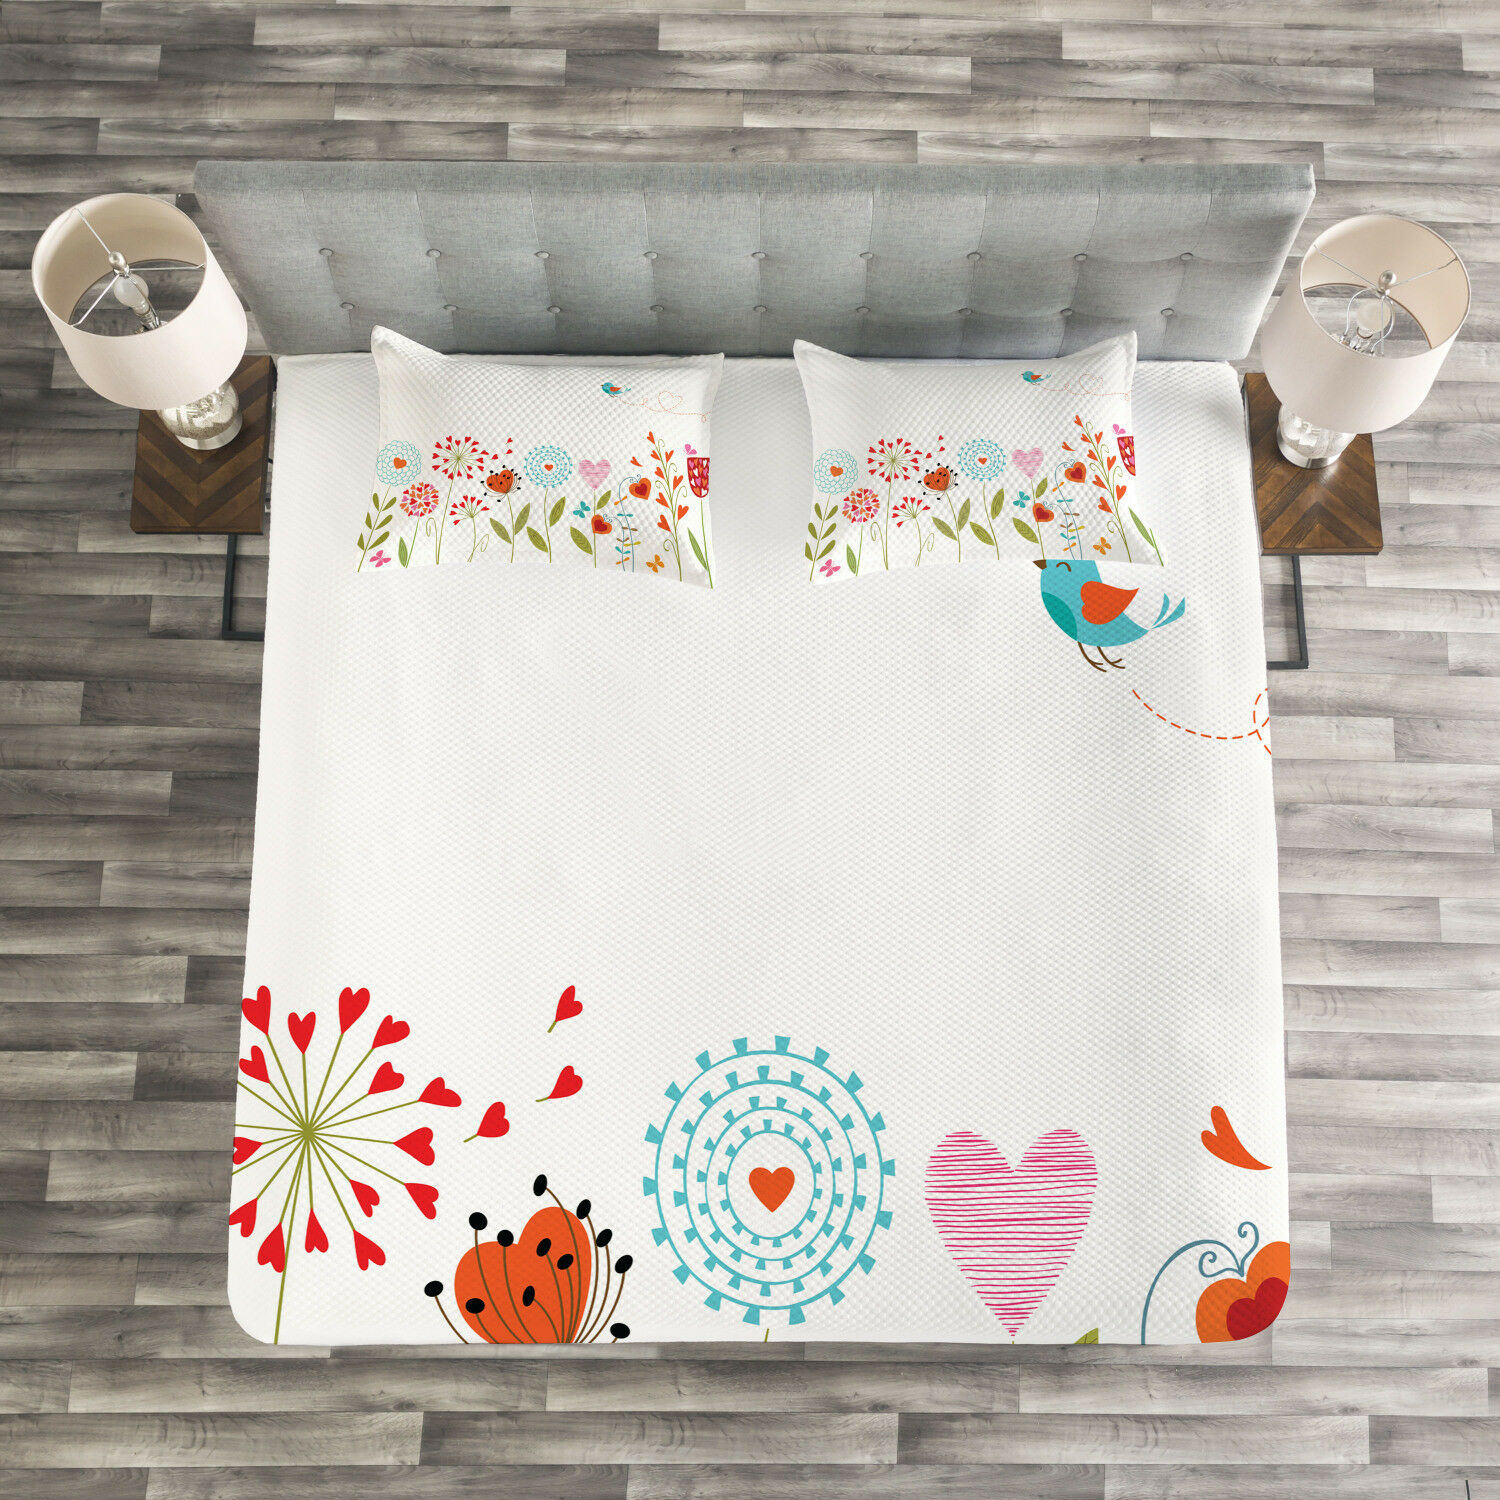 Flower Quilted Bedspread & Pillow Shams Set, Romantic Hearts Design Print